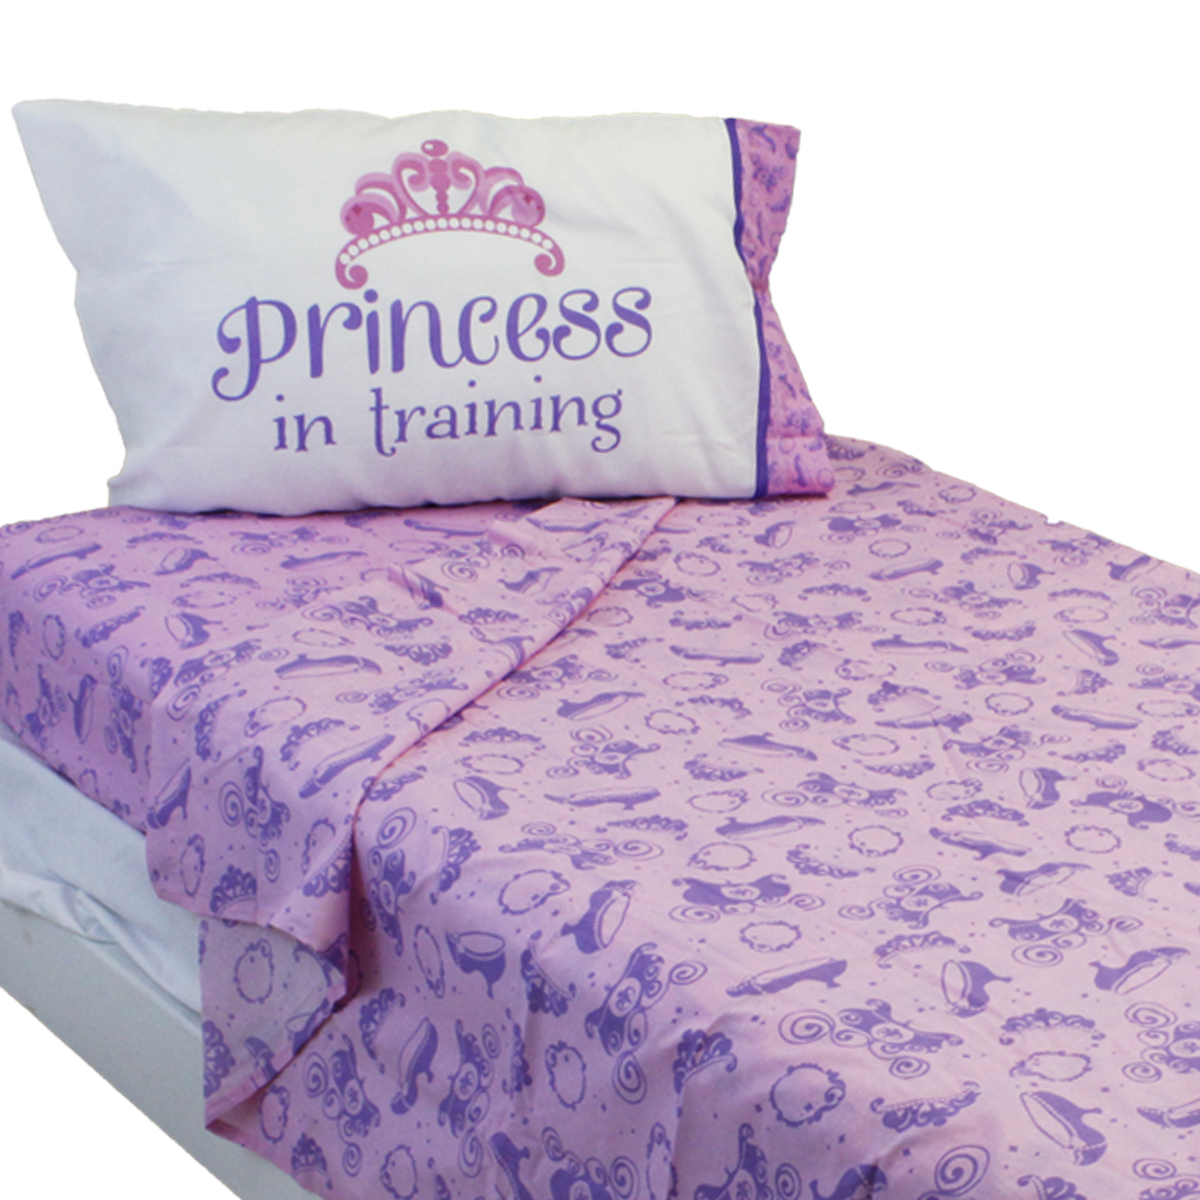 3pc Disney Sofia the First Twin Sheet Set Princess in Training Scrolls Bedding Accessories